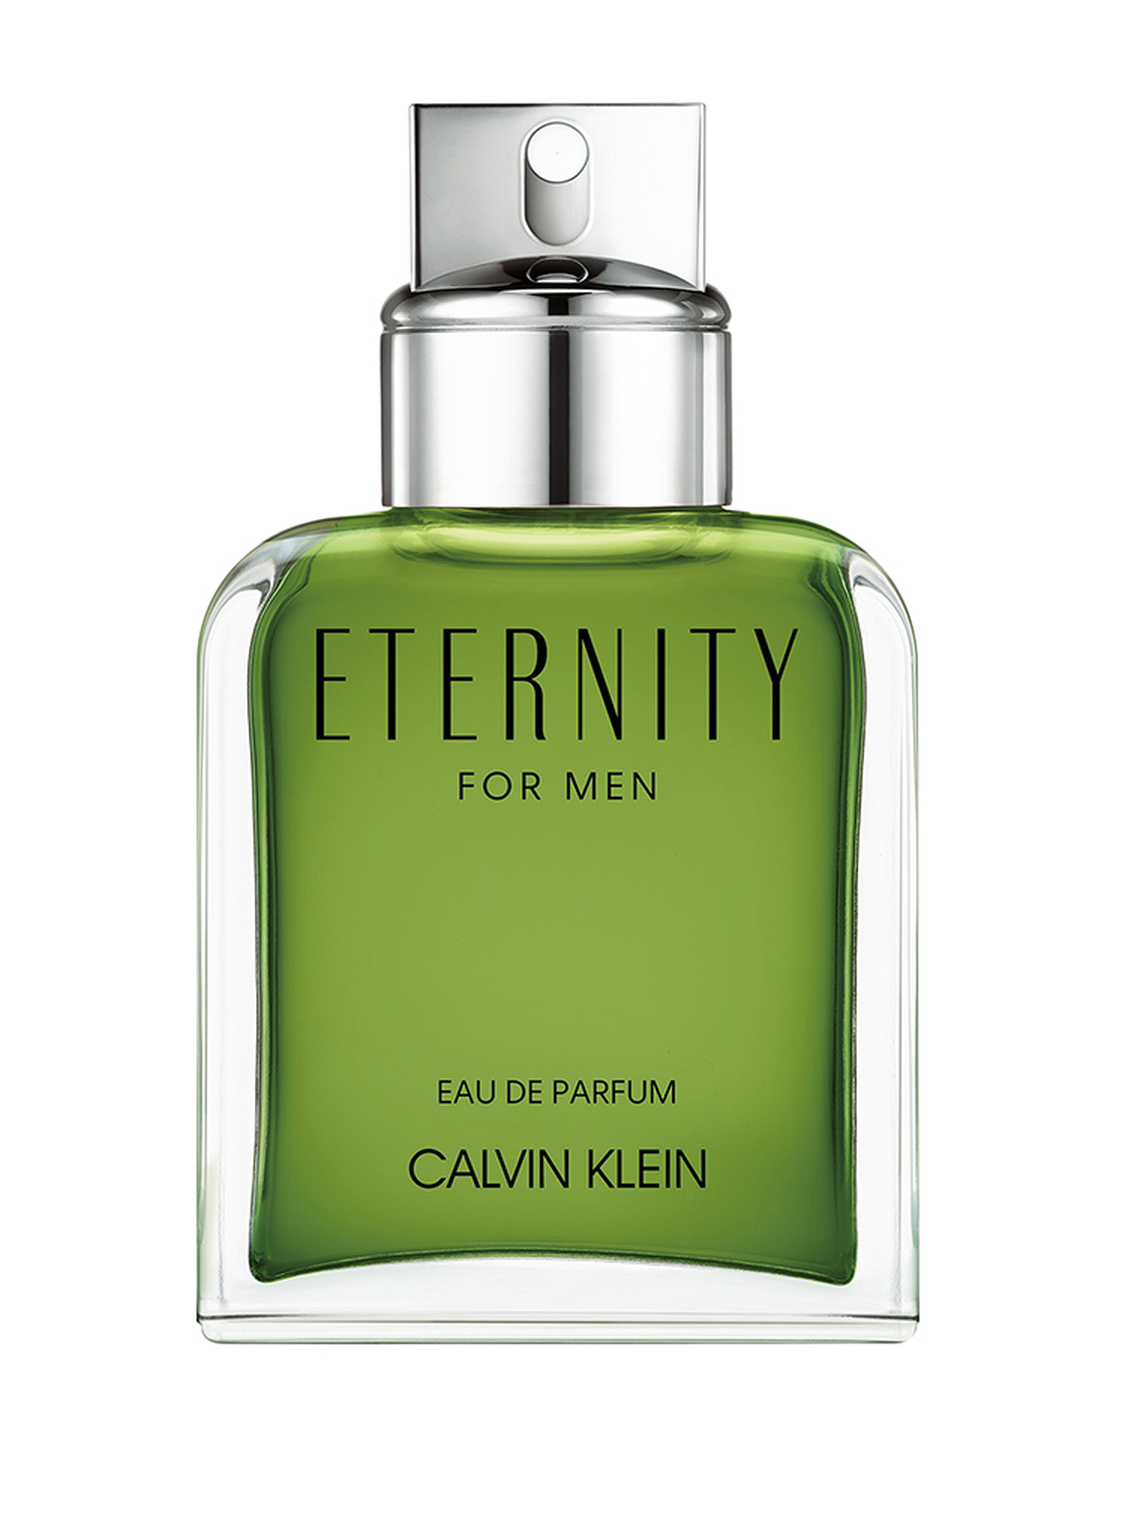 Calvin Klein Eternity For Men Eau de Parfum 30 ml von Calvin Klein